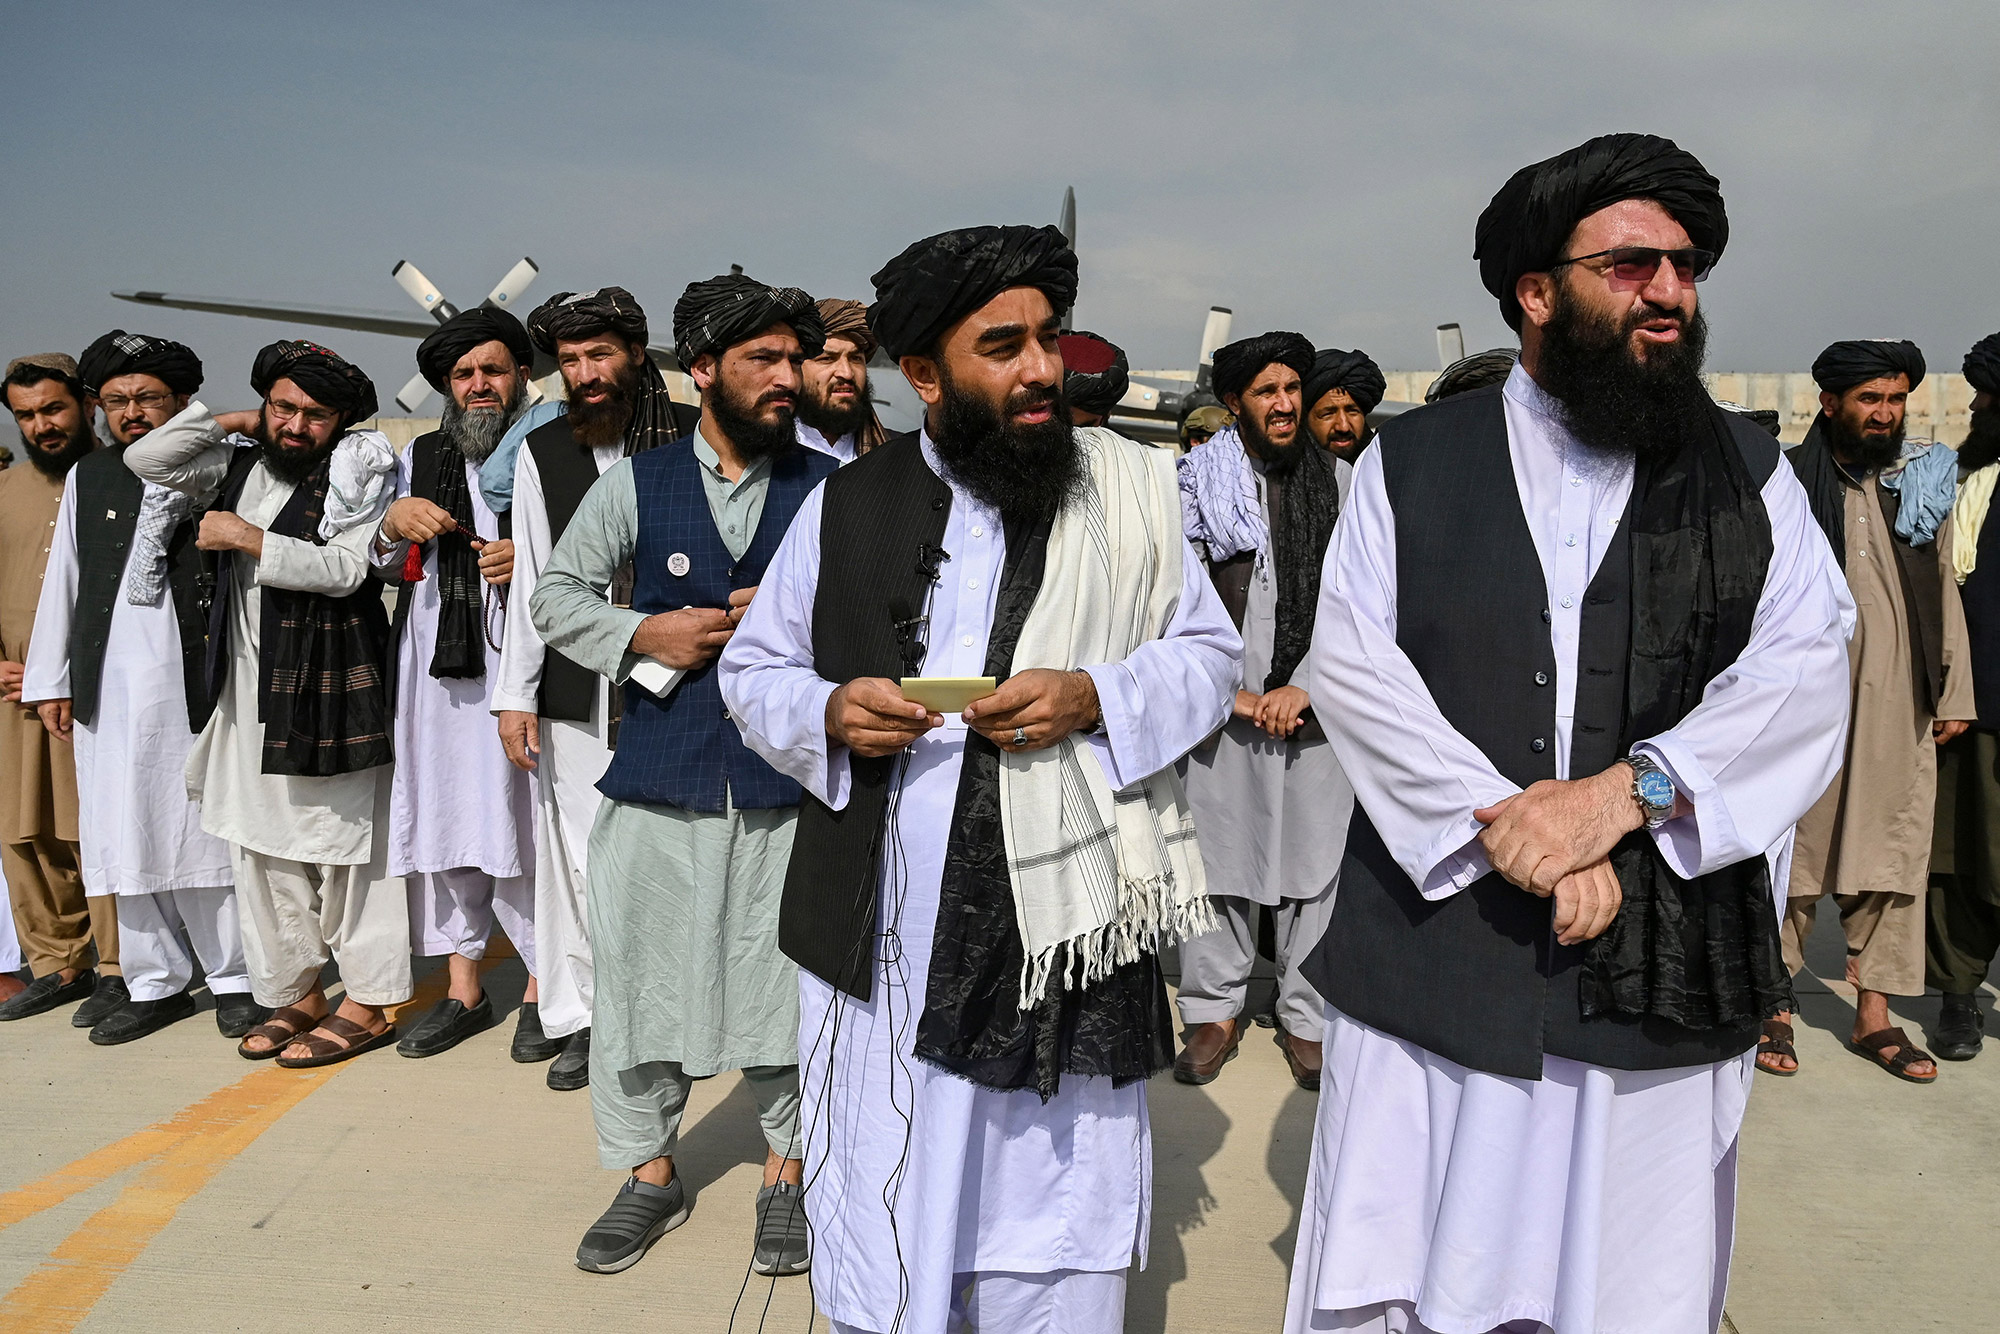 Taliban officials declare victoryover the United States from the tarmac of Kabul airport on August 31, hours after the withdrawal of the last American troops.